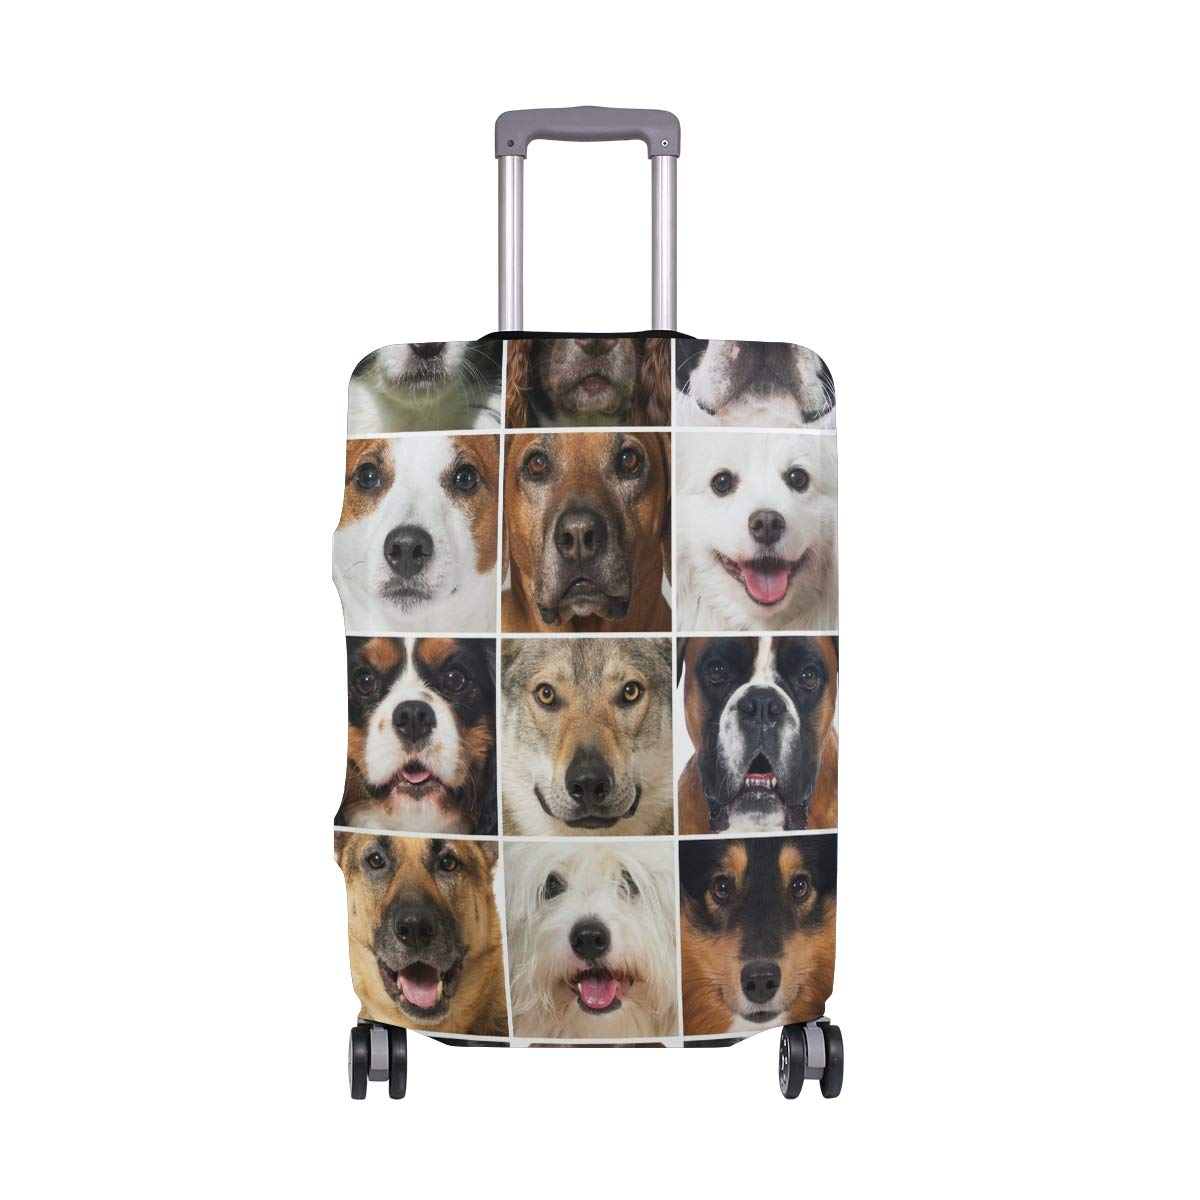 Travel Luggage Cover Spandex Suitcase Protector Washable Baggage Covers Dog Smile Face Collage